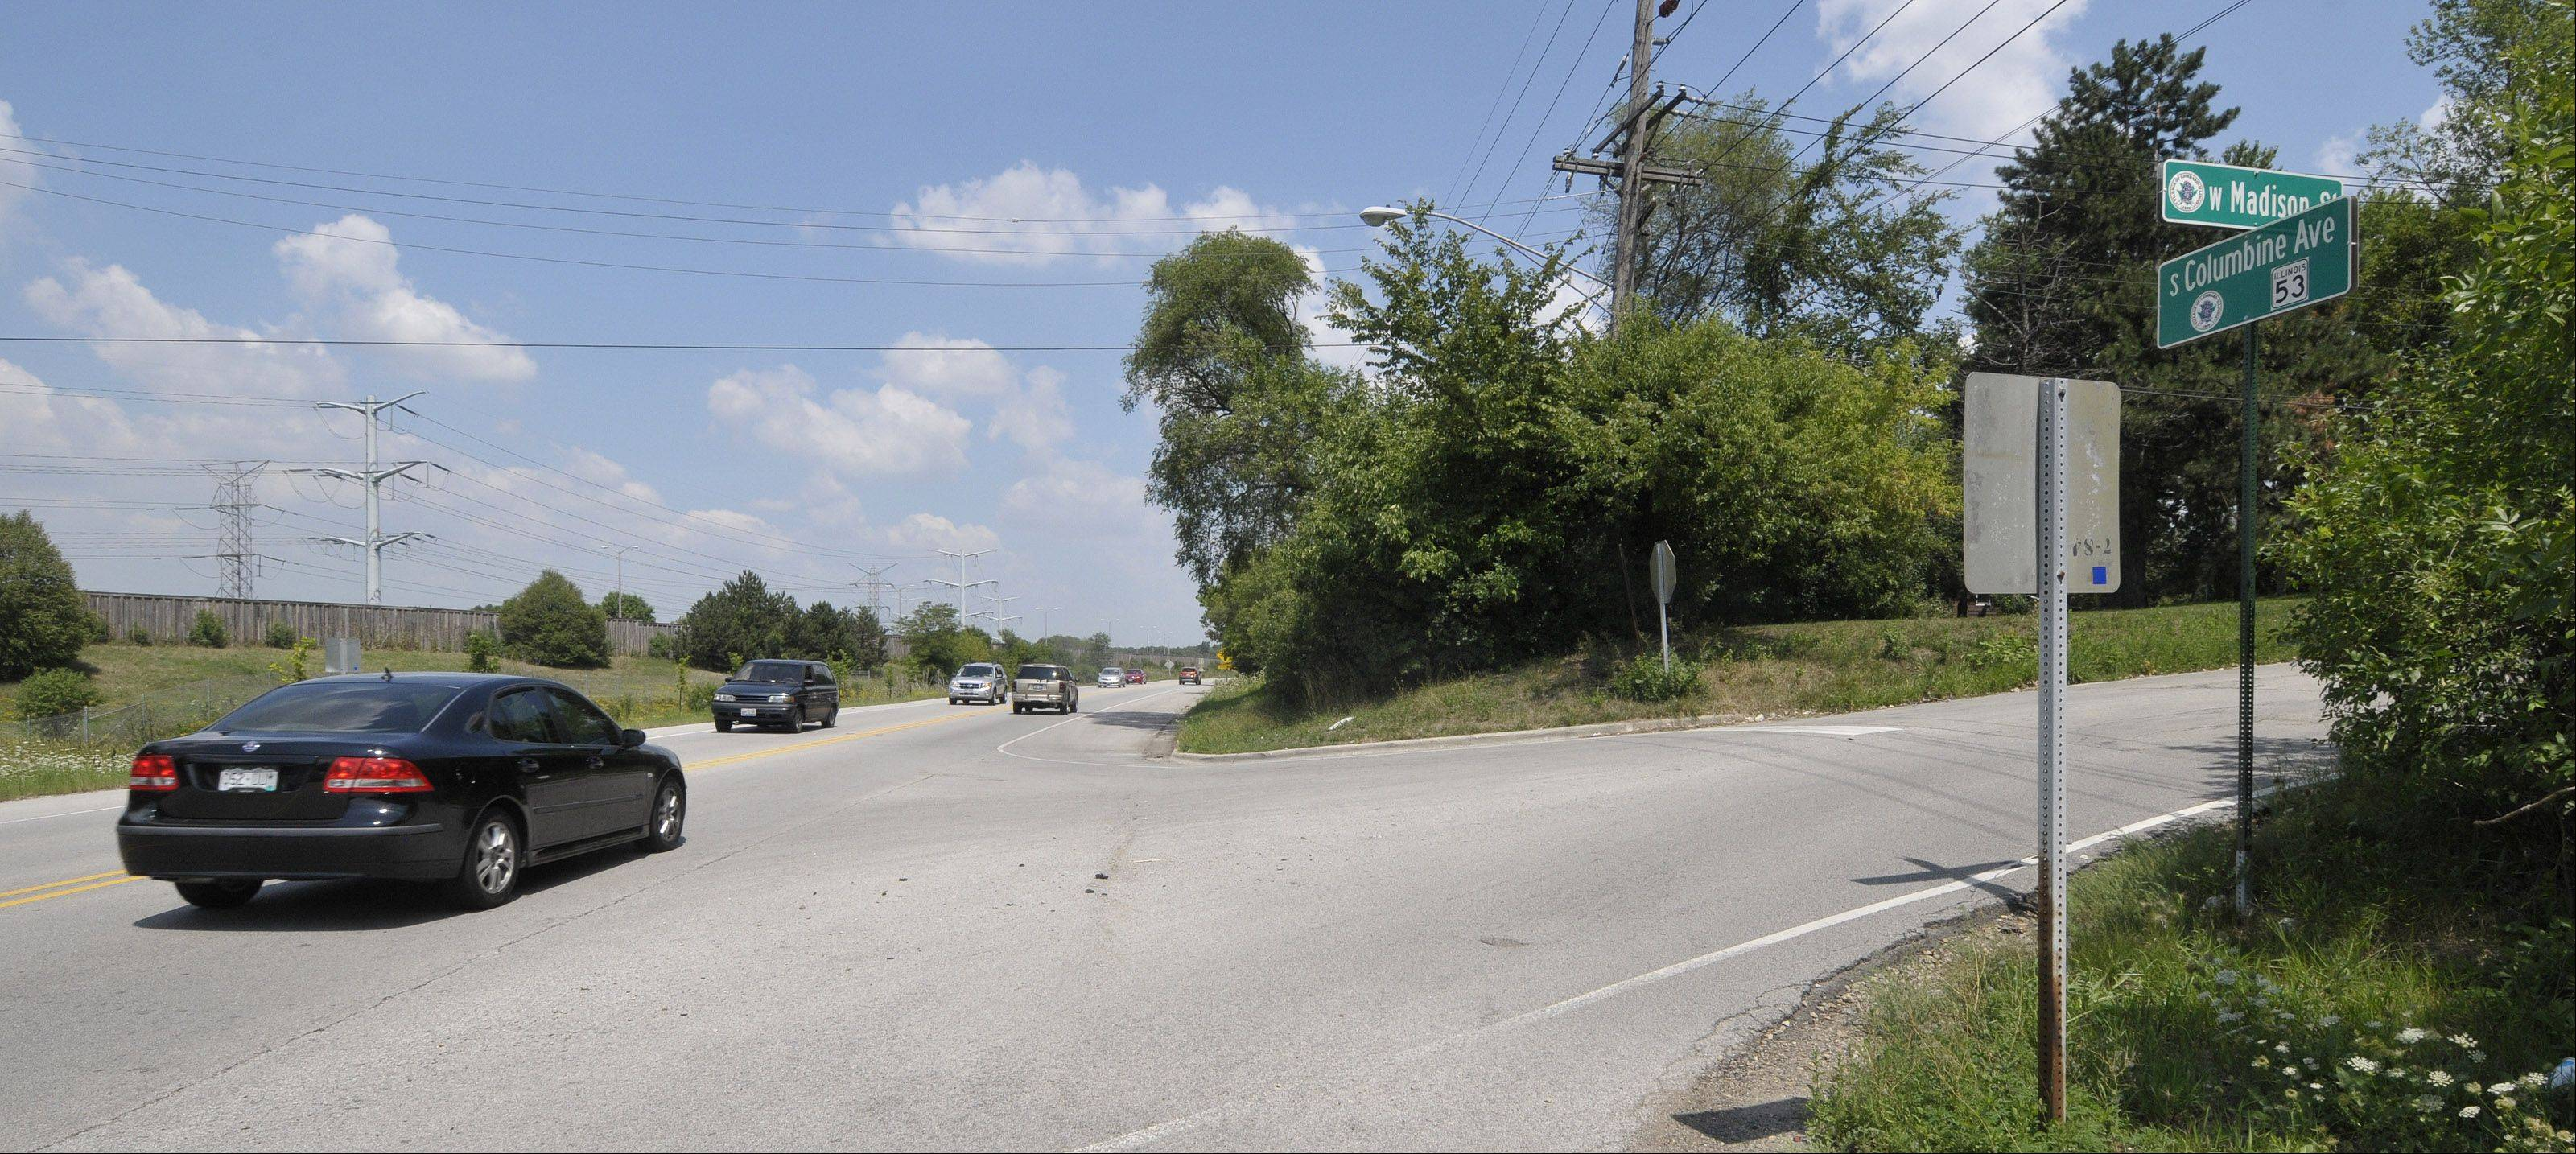 The intersection of Route 53 and Madison Street in Lombard is in store for improvements that will add two left-turn lanes and a right-turn lane from northbound Route 53 onto Madison once enough funding for the project is secured.